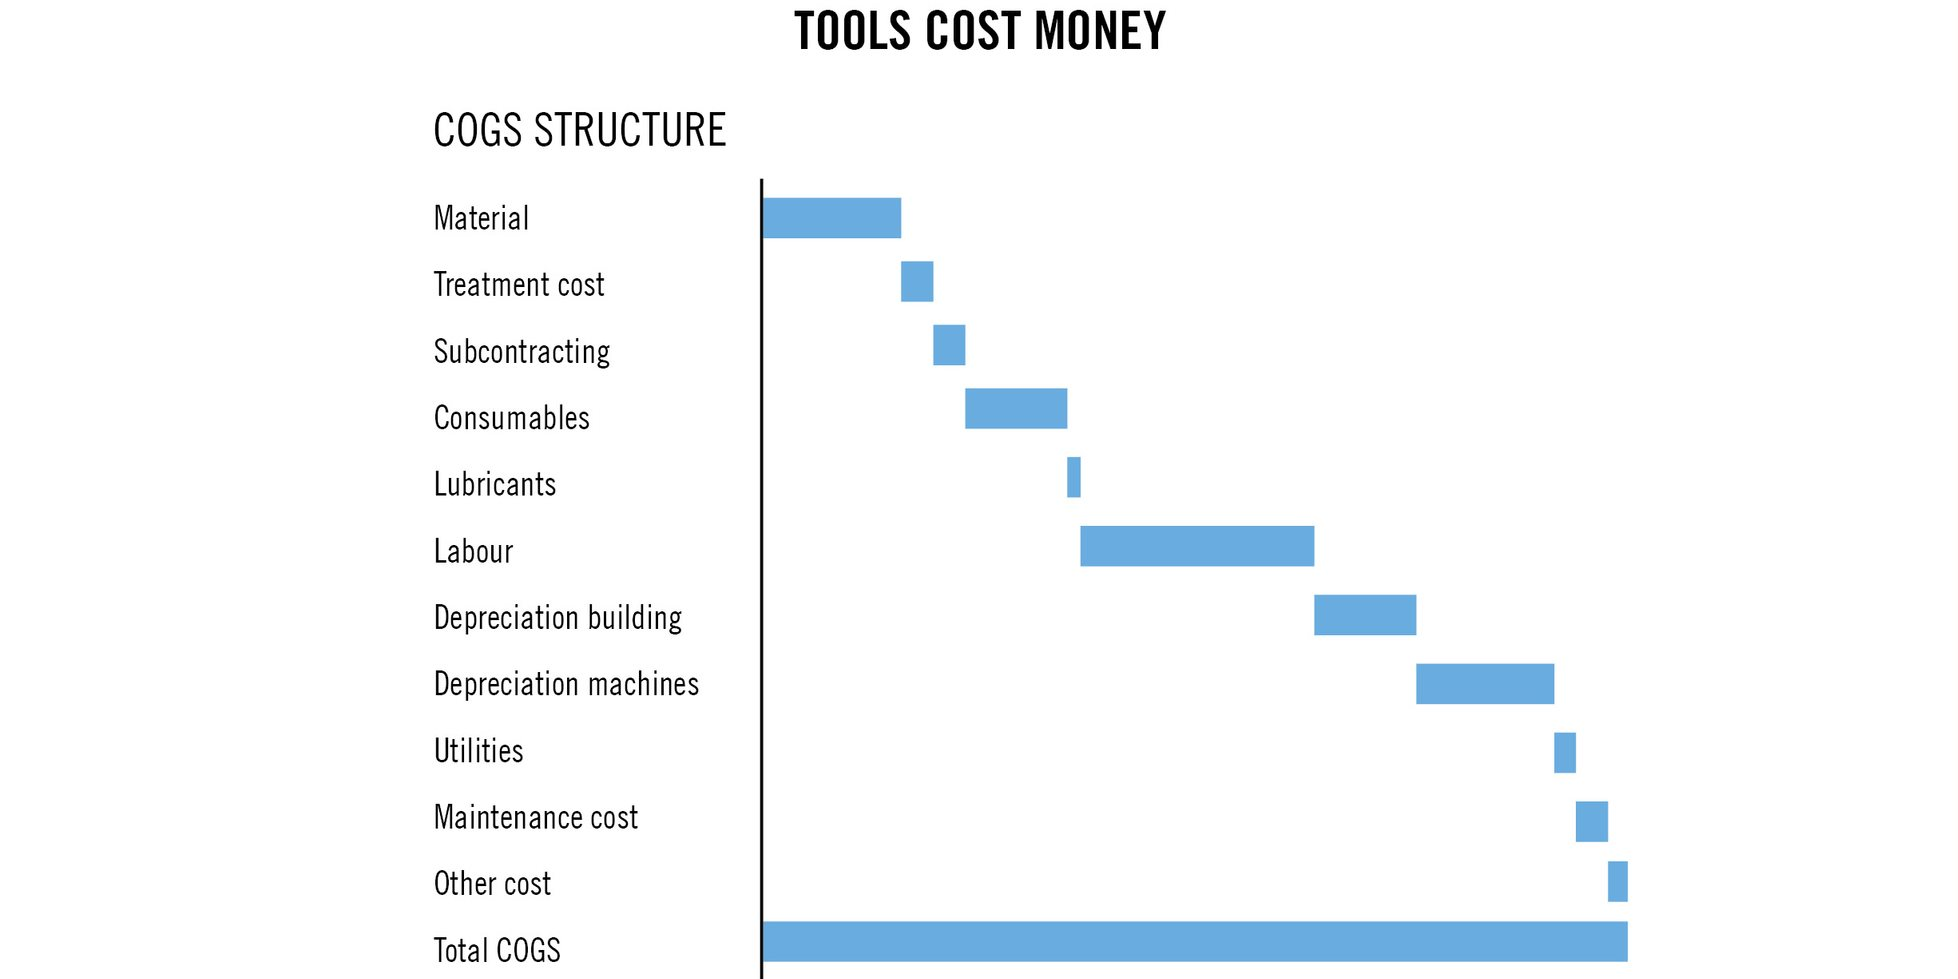 Tools cost money